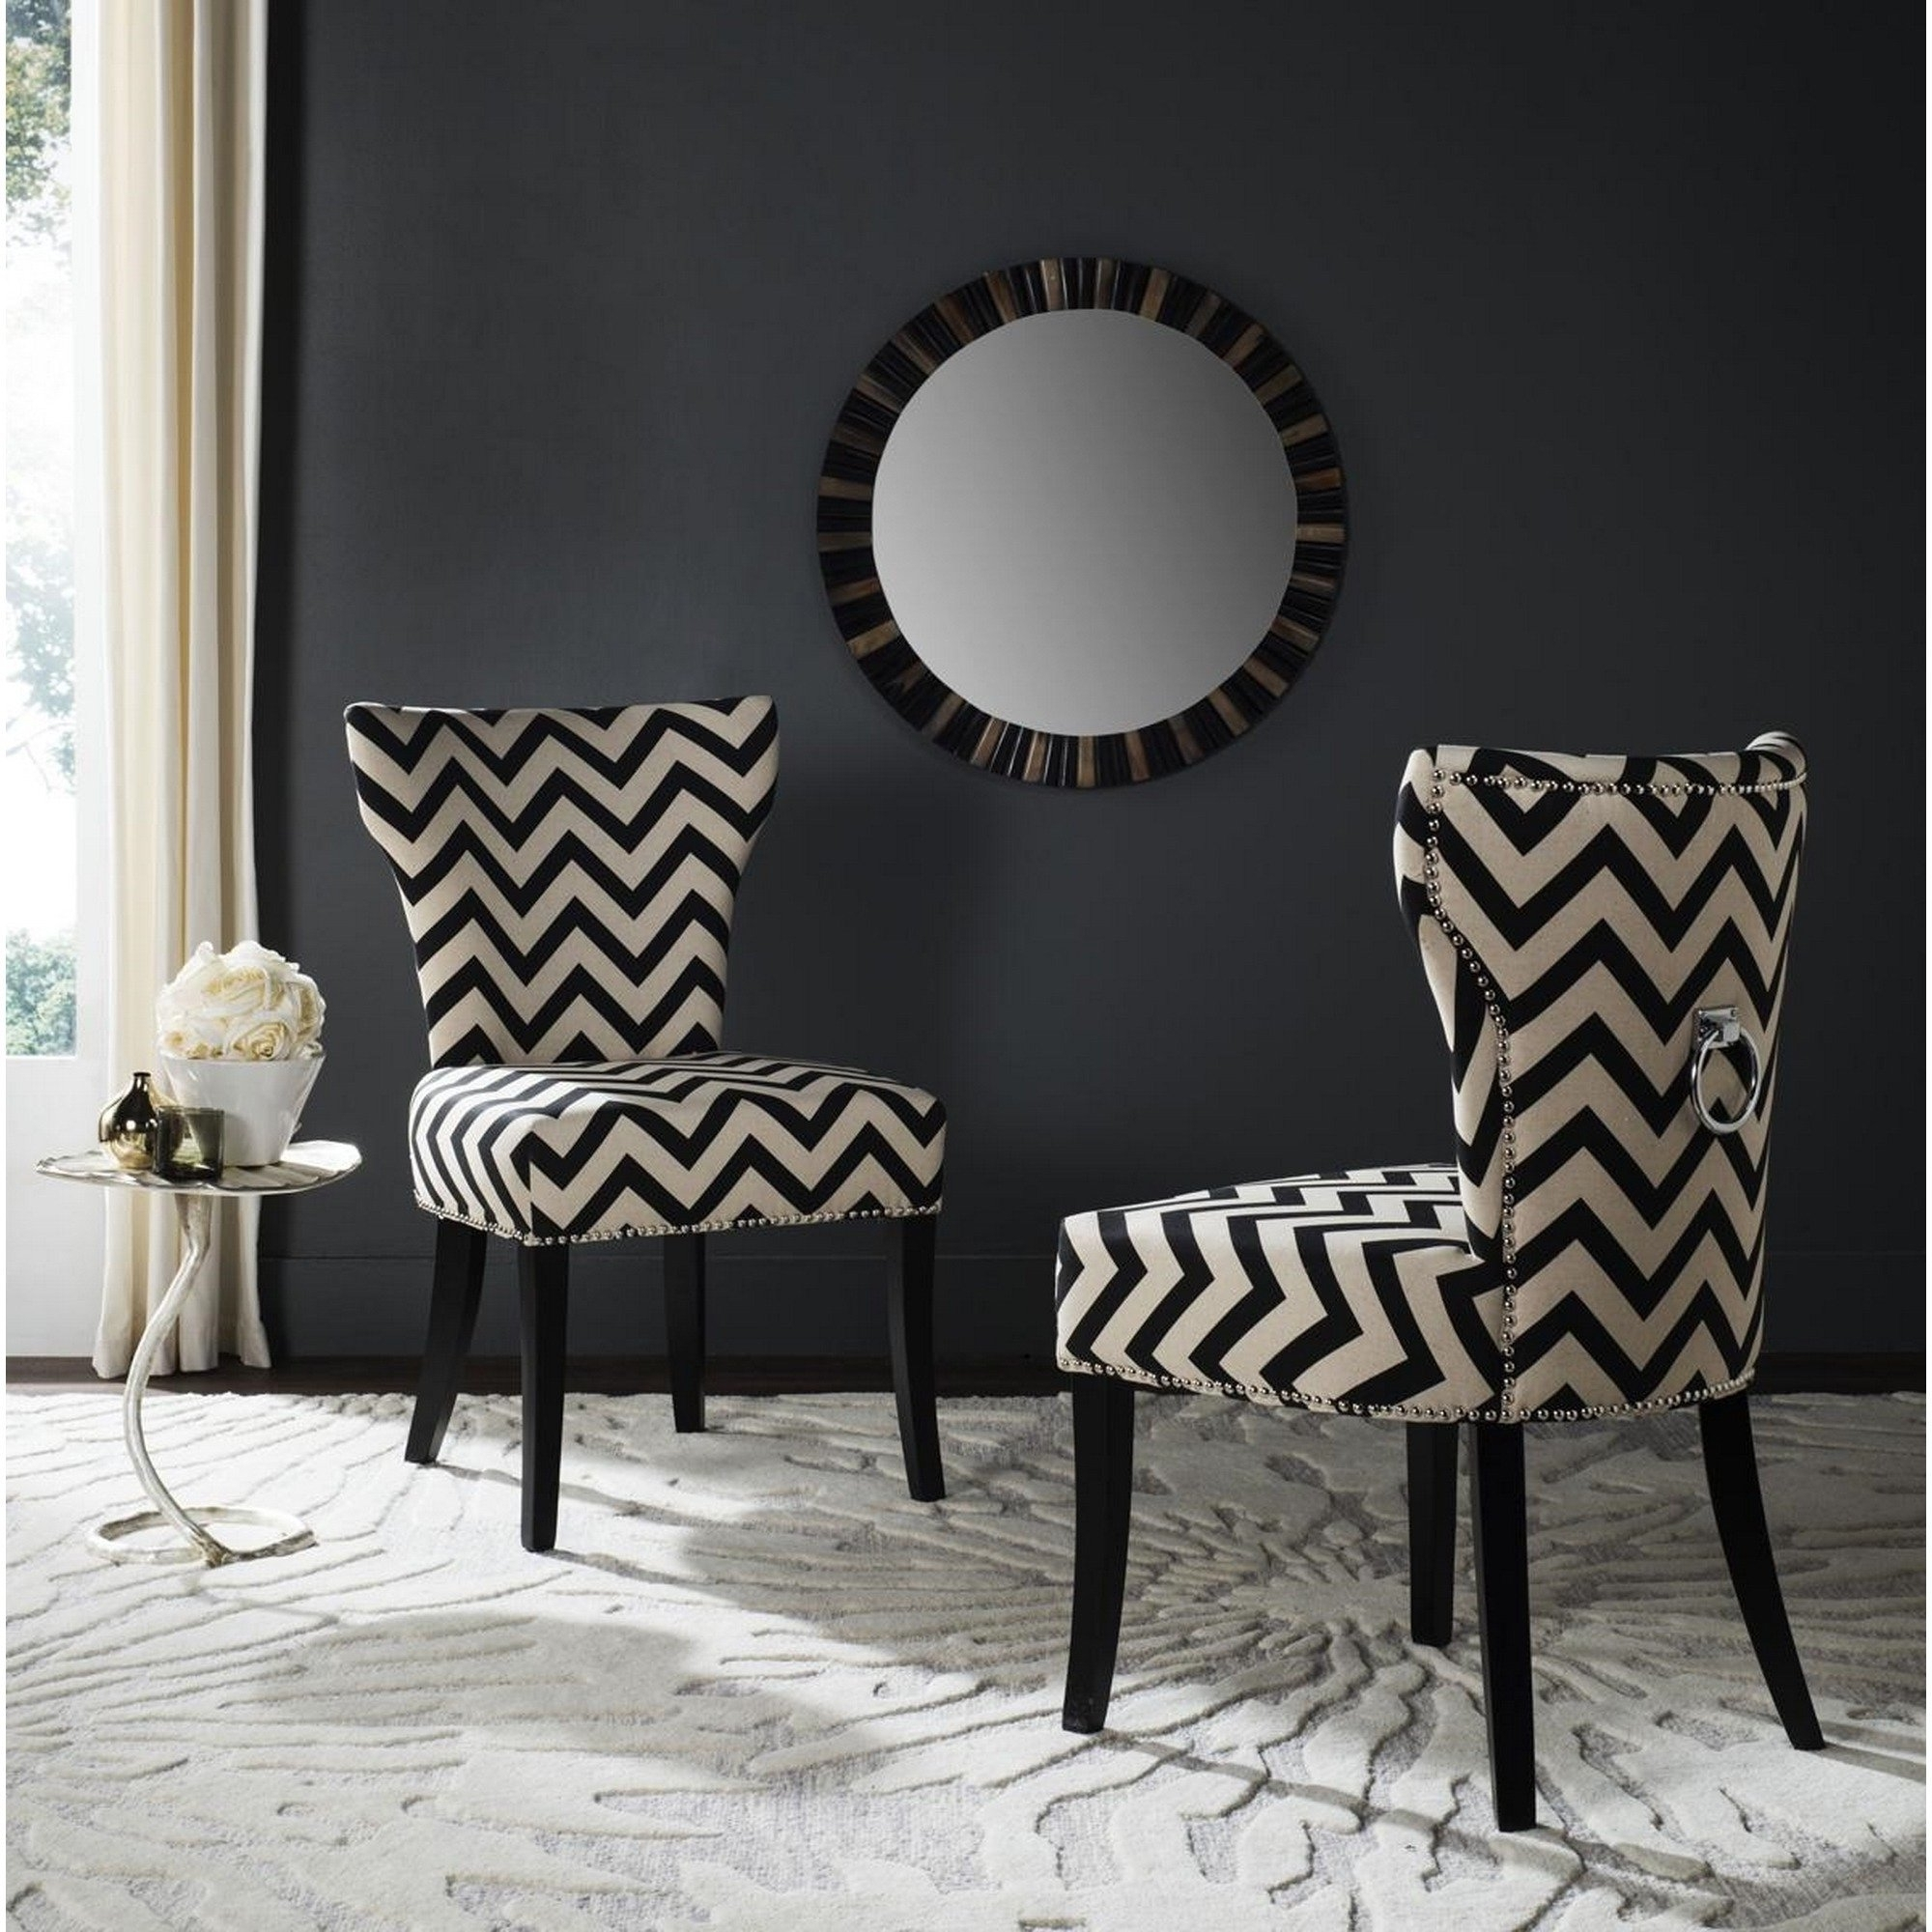 2018 Caira Black Upholstered Side Chairs Inside Shop Safavieh En Vogue Dining Jappic Chevron Black/white Ring Dining (View 2 of 20)